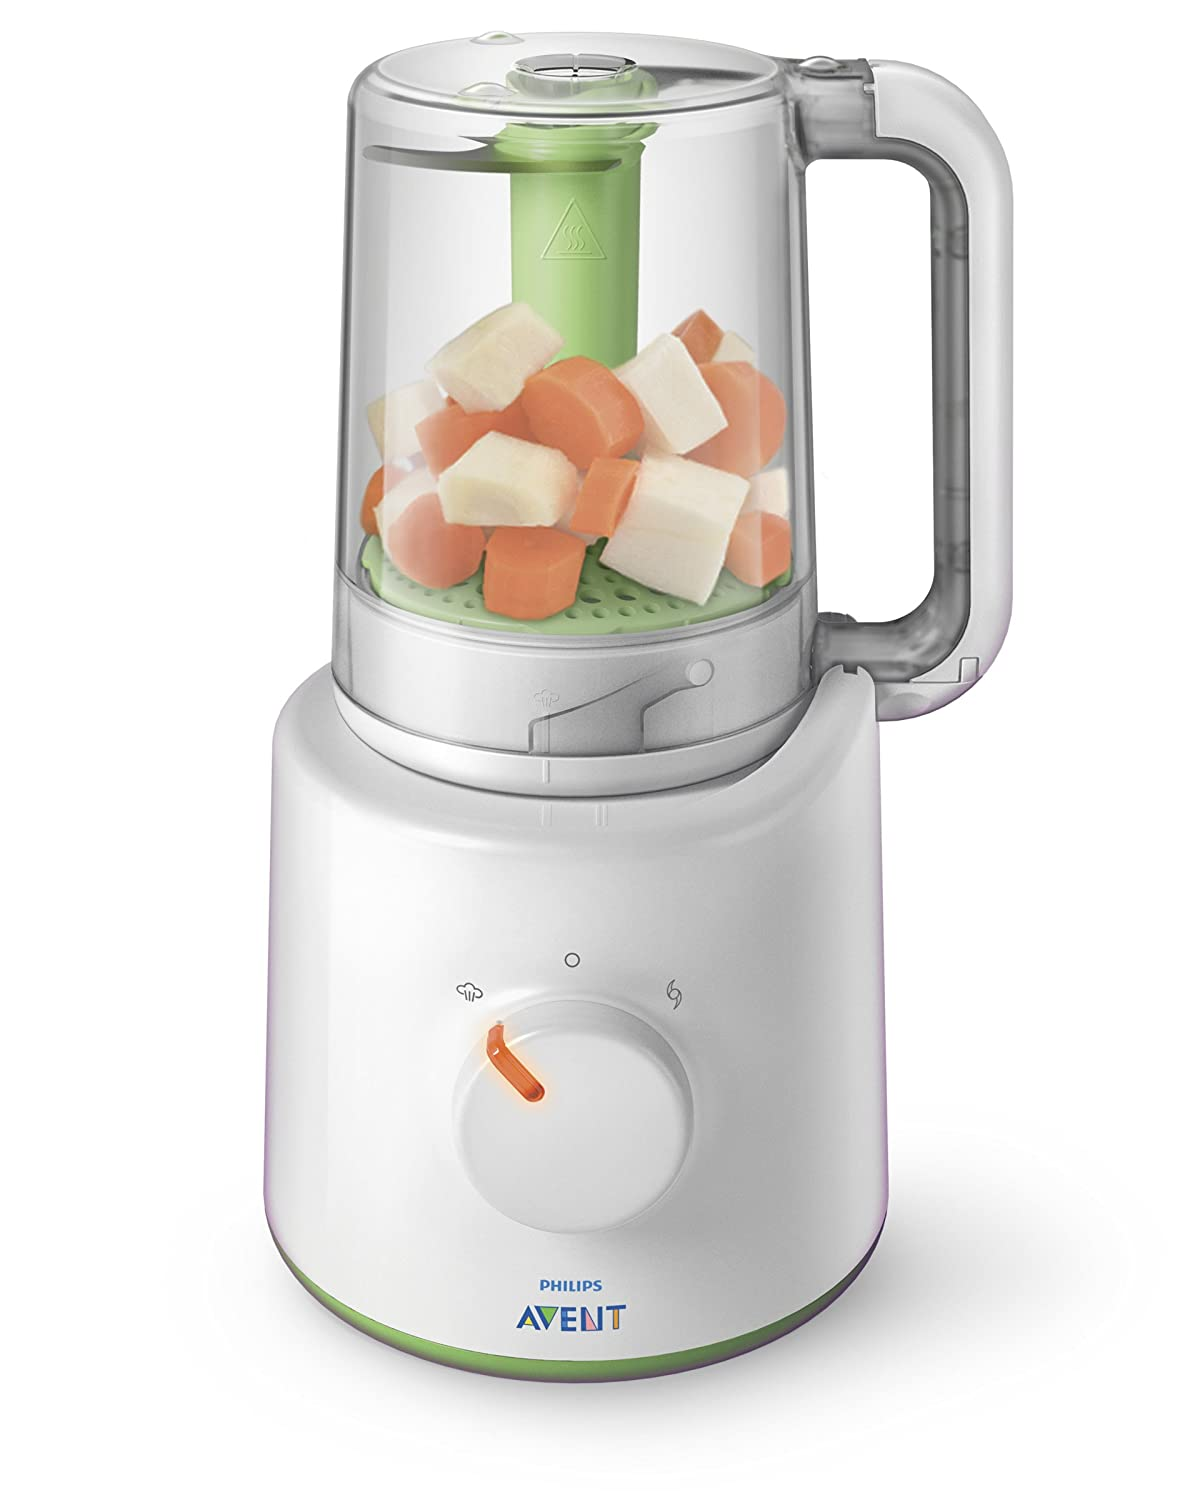 Philips Avent SCF870/20 Combined Steamer and Blender